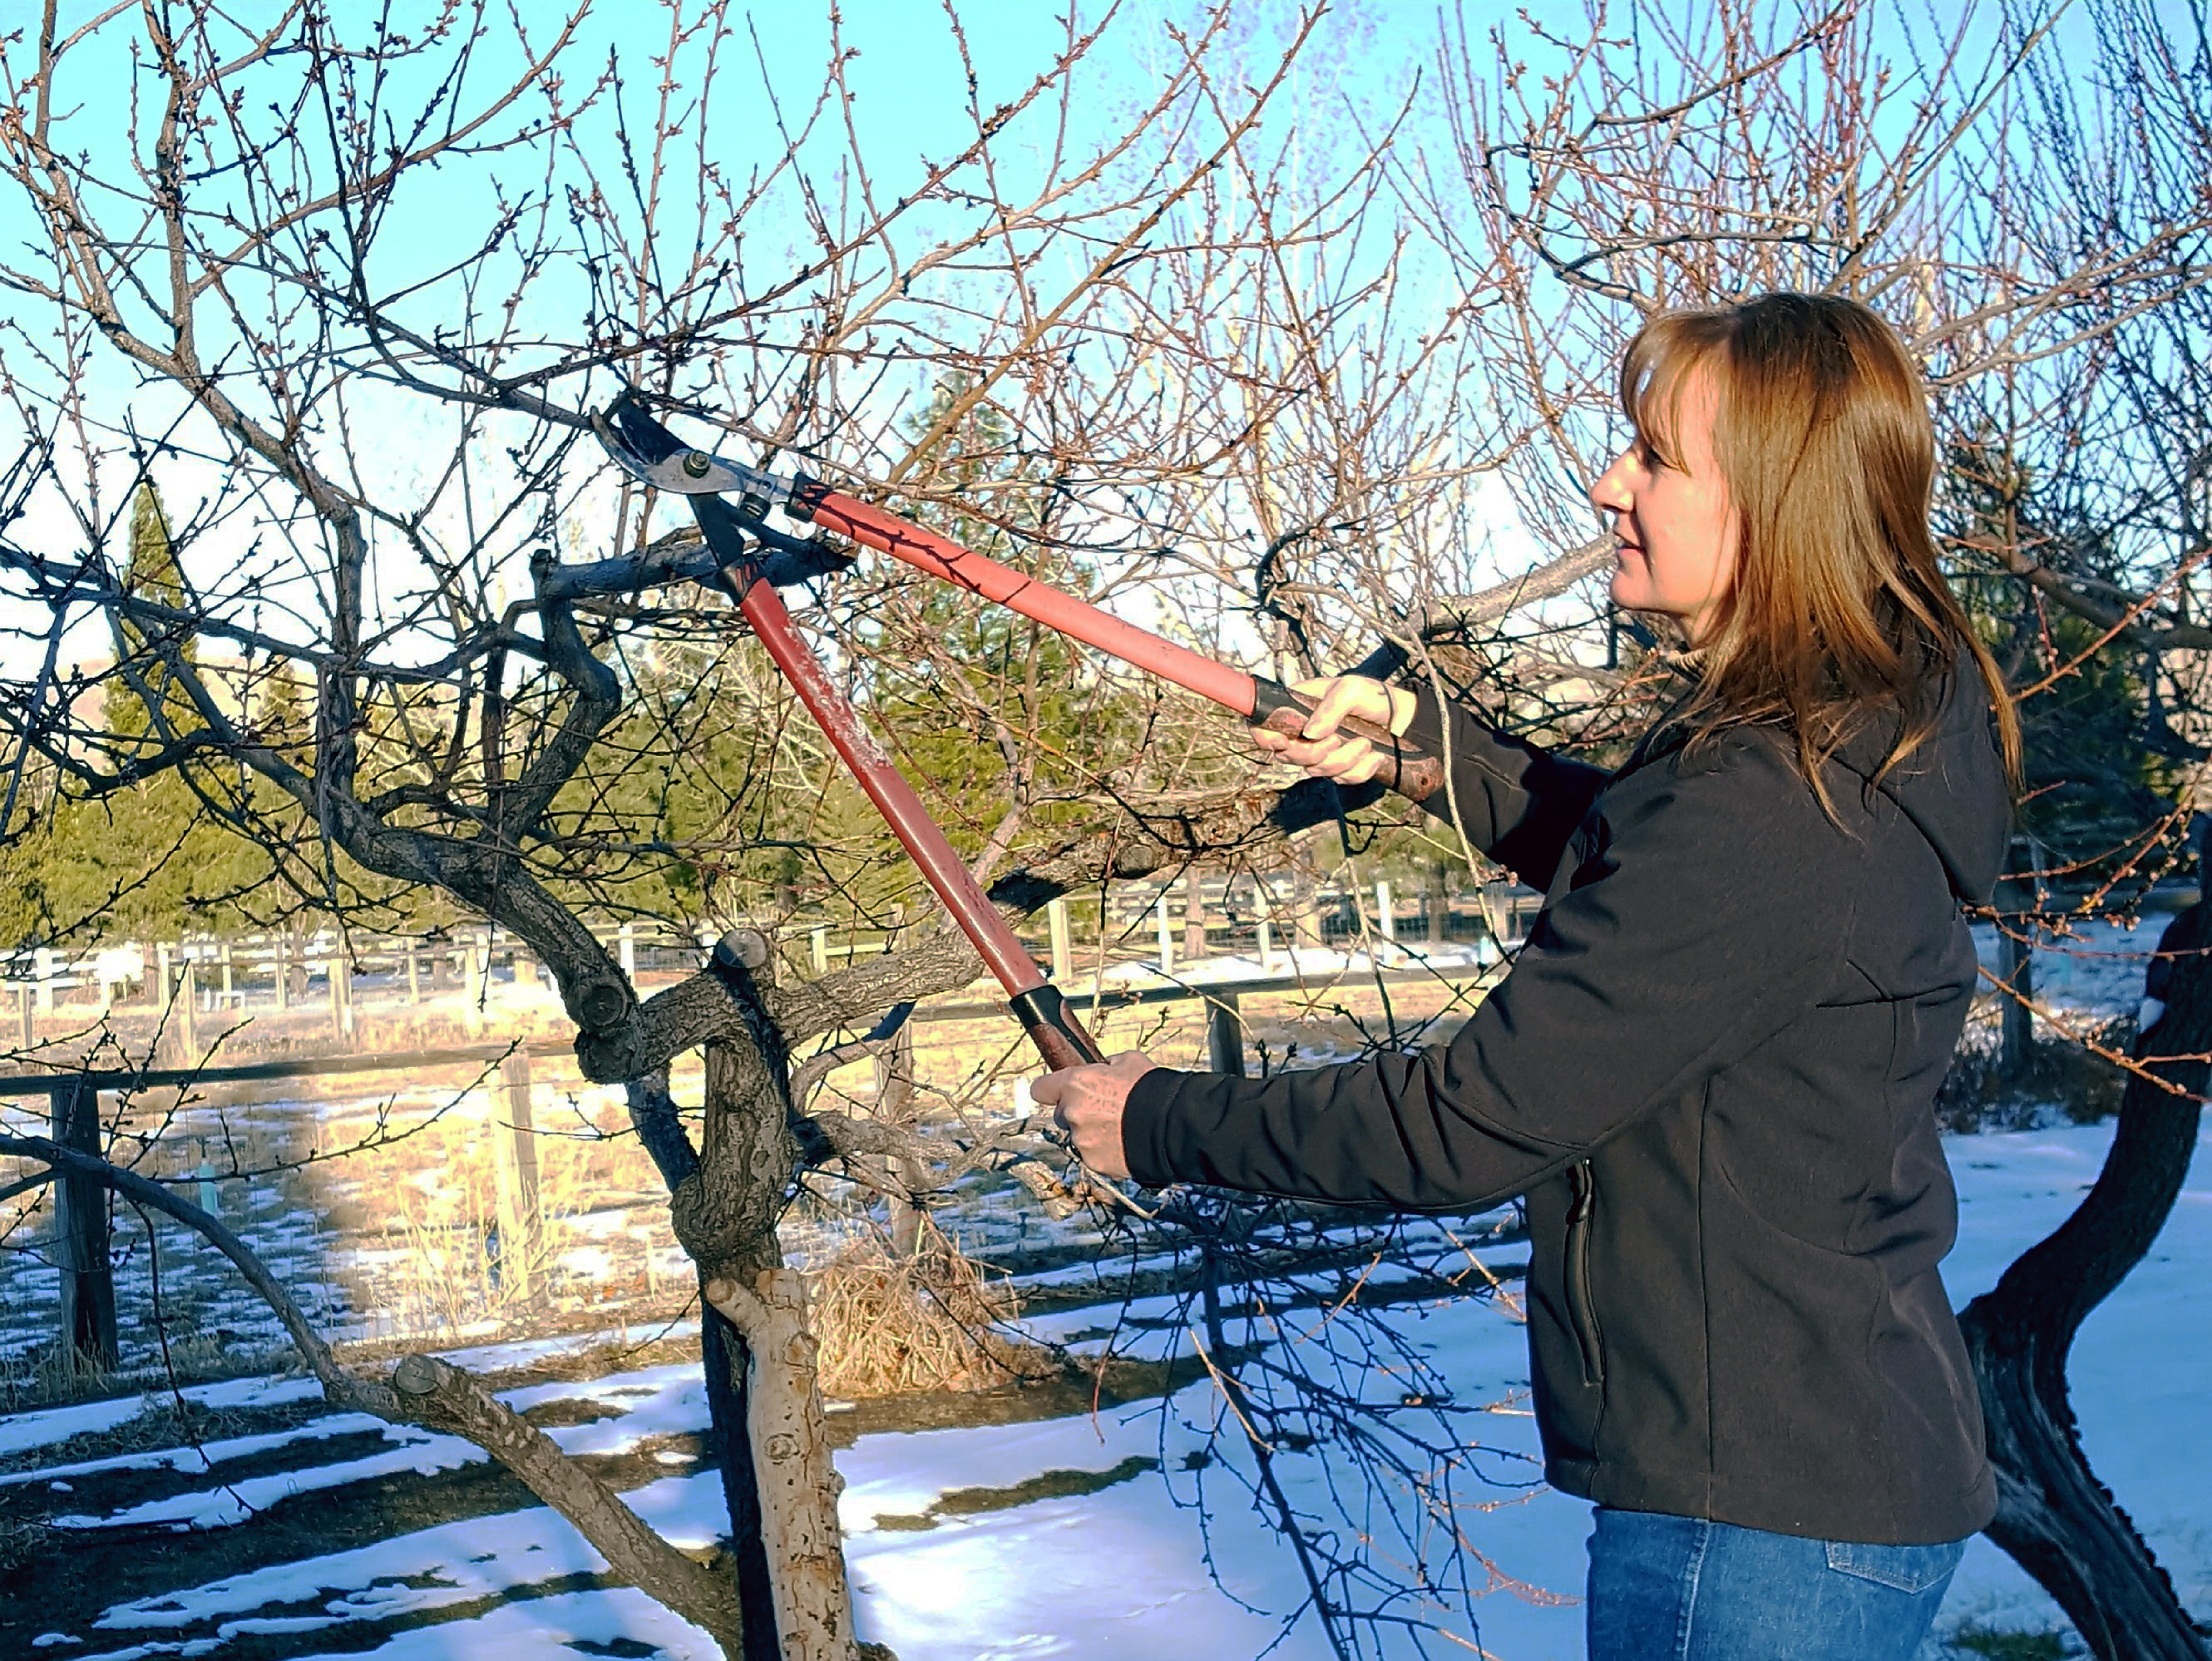 woman cutting tree branch with loppers